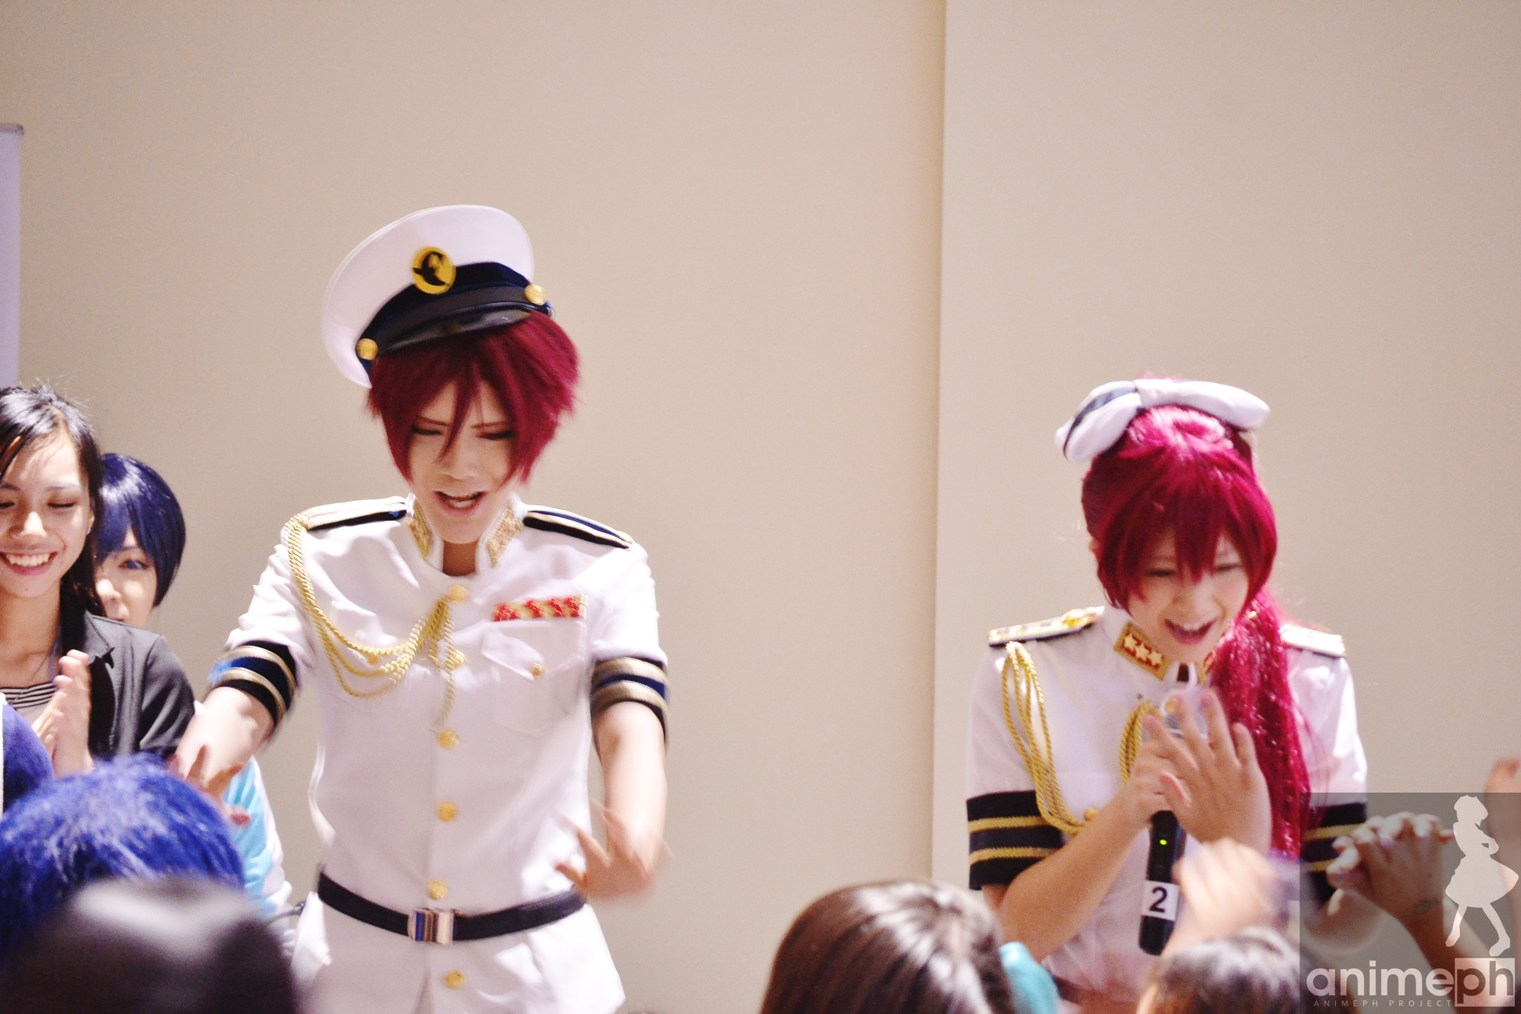 cosplay_mania_meet_and_greet_madness (3)